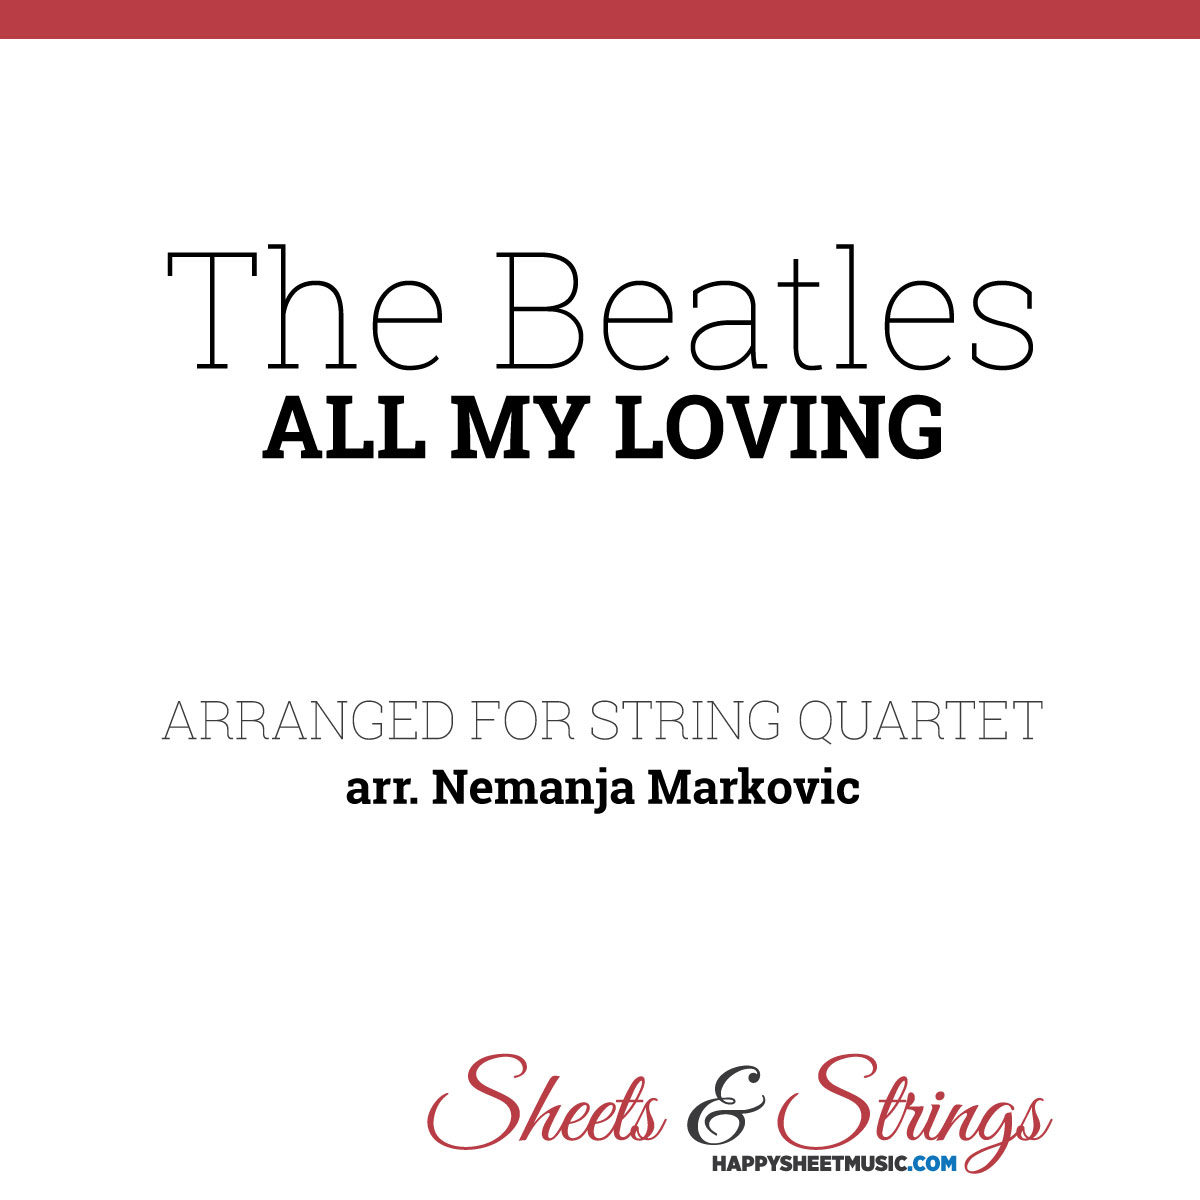 The Beatles - All My Loving - Sheet Music for String Quartet - Music Arrangement for String Quartet